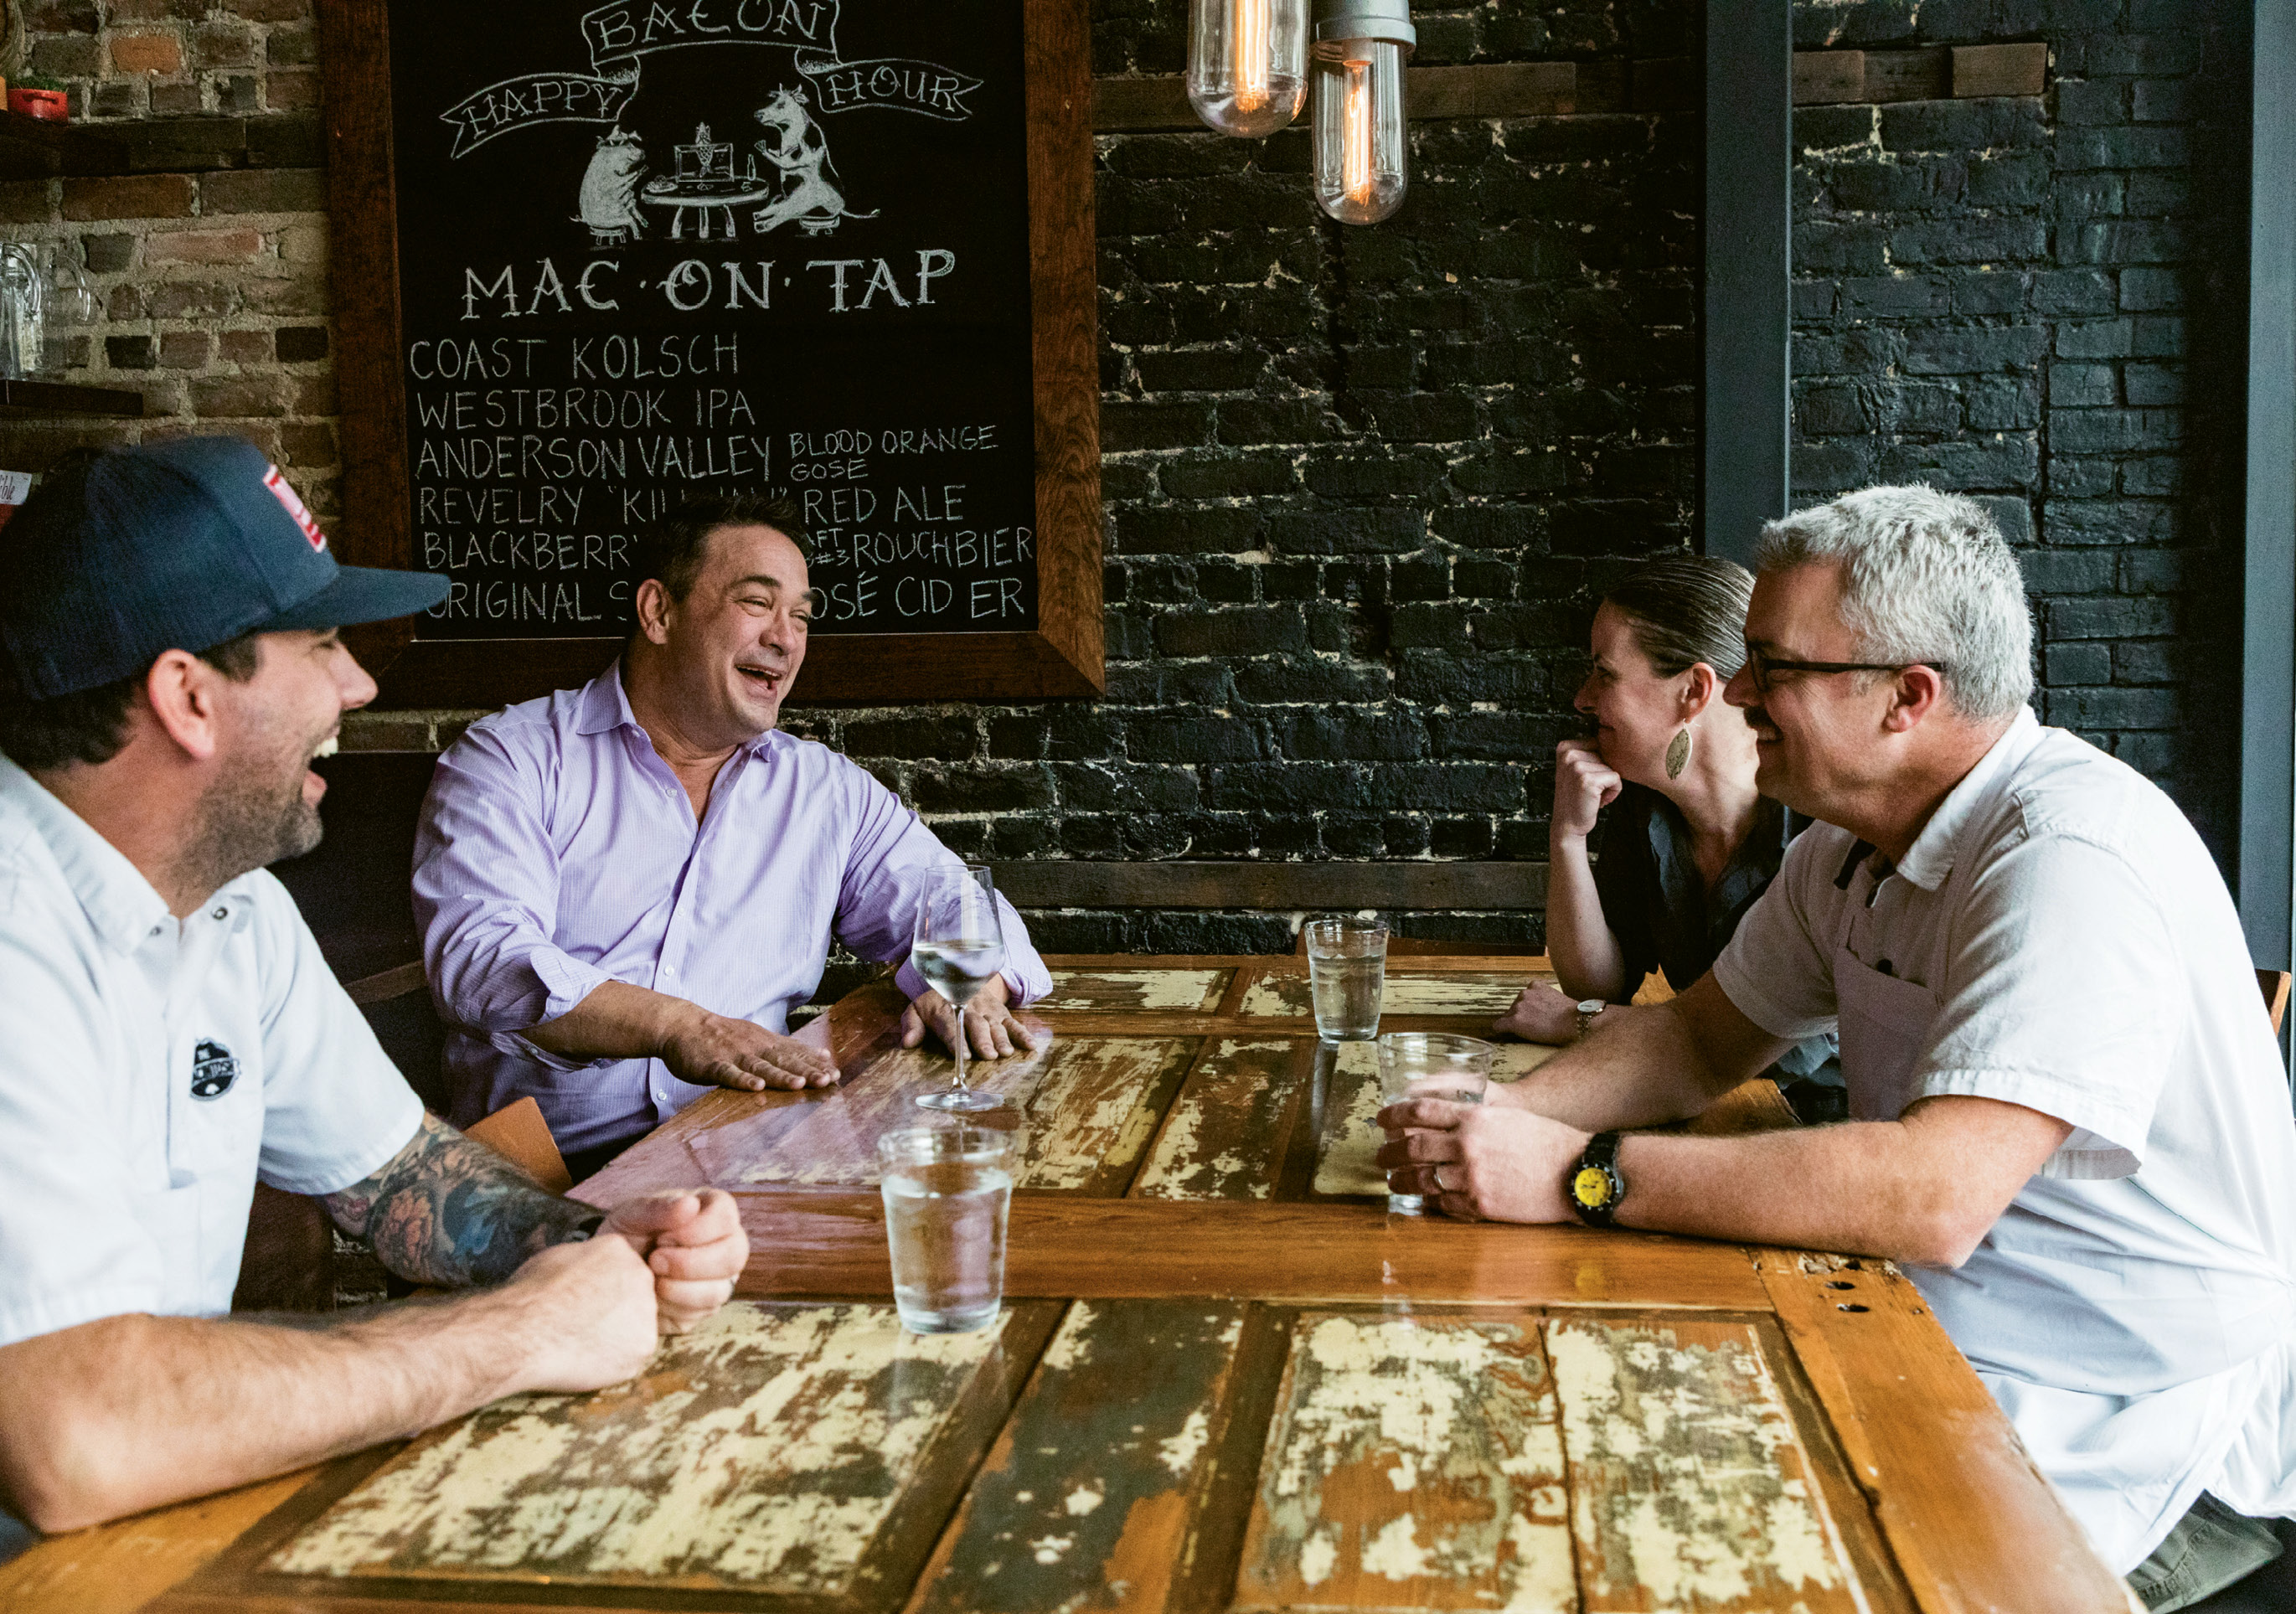 """Palmer catches up with his team at The Macintosh, including (left to right) executive chef Jacob Huder, general manager Julie Hennigan, and chef-partner Jeremiah Bacon. As a sober person working in the restaurant business, Palmer loves what he does, and it shows. As far as his beverages of choice, he says, """"Sparkling water, of course, but I love the new trend of nonalcoholic cocktails. I'm so glad the industry is finally recognizing that sober people like to drink fun things too. And, by the way, we are happy to pay for them!"""""""